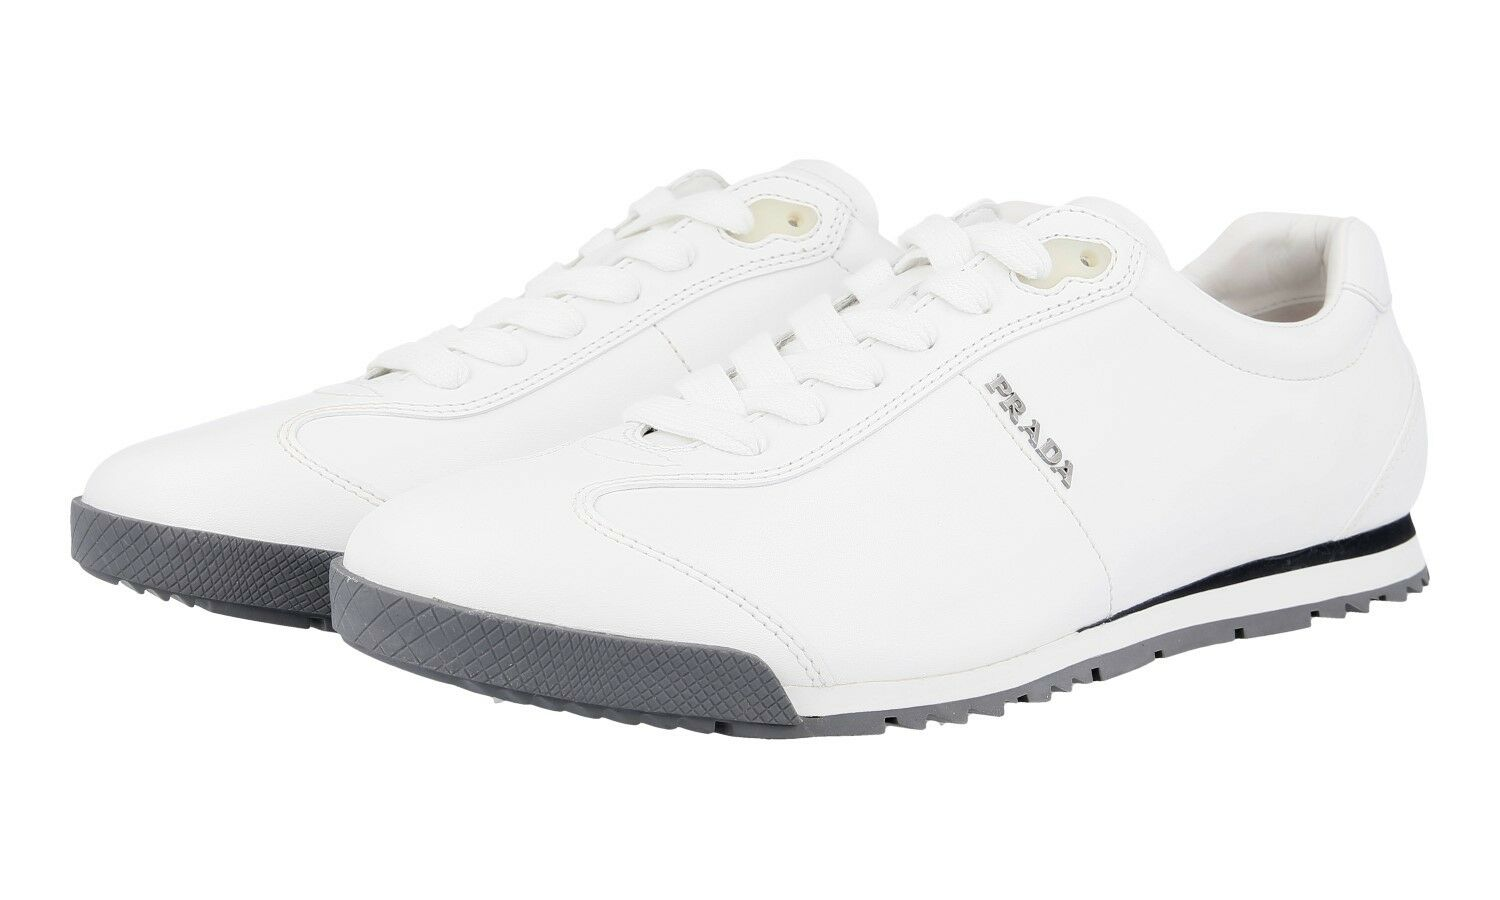 AUTHENTIC LUXURY PRADA SNEAKERS SHOES 4E2554 WHITE NEW US 8